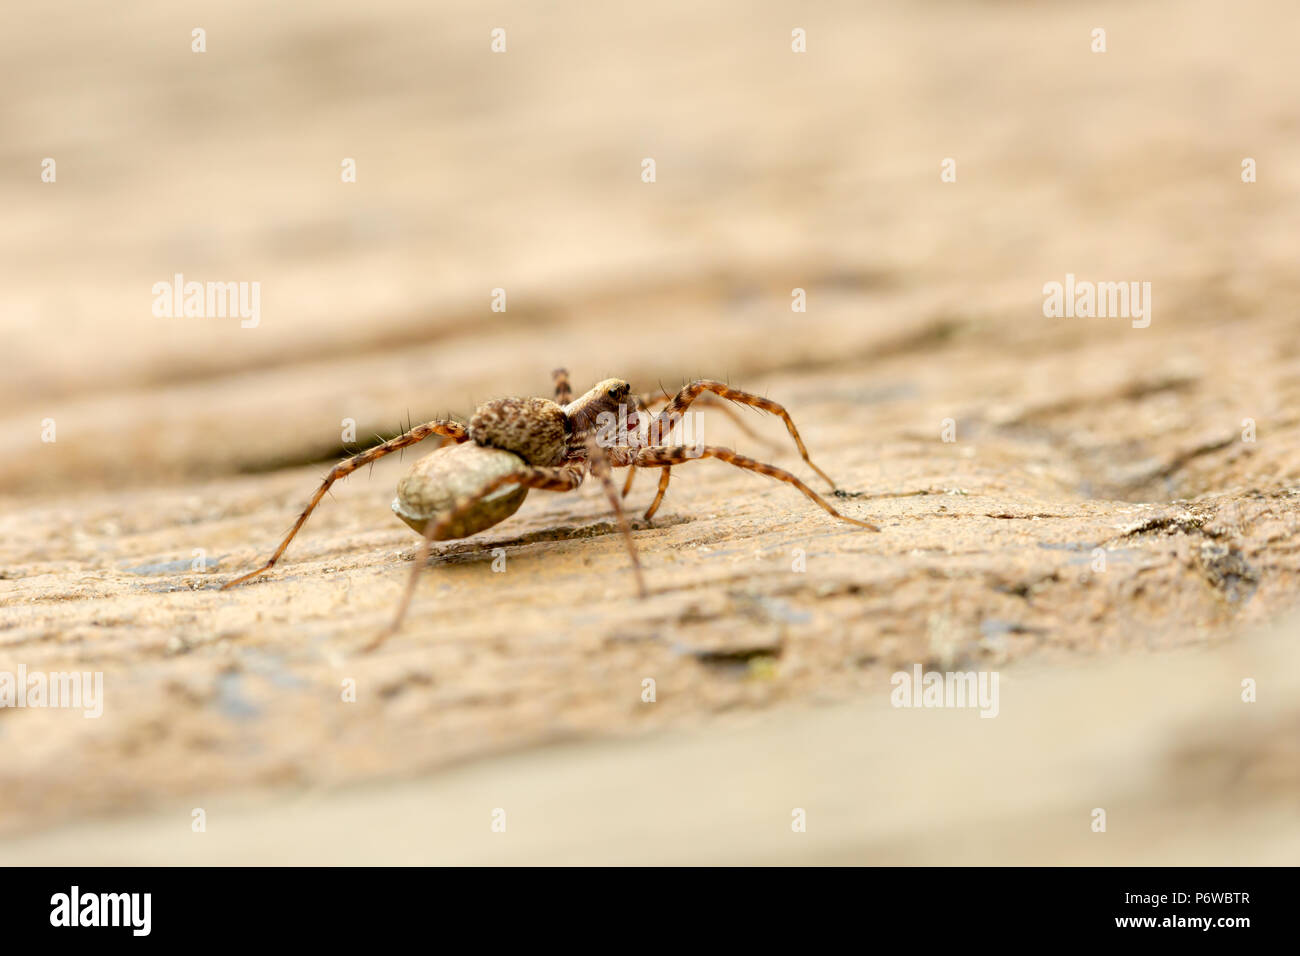 Macro photo of Spotted wolf spider with egg sac attached on spinnerets, taken with narrow depth of field. - Stock Image